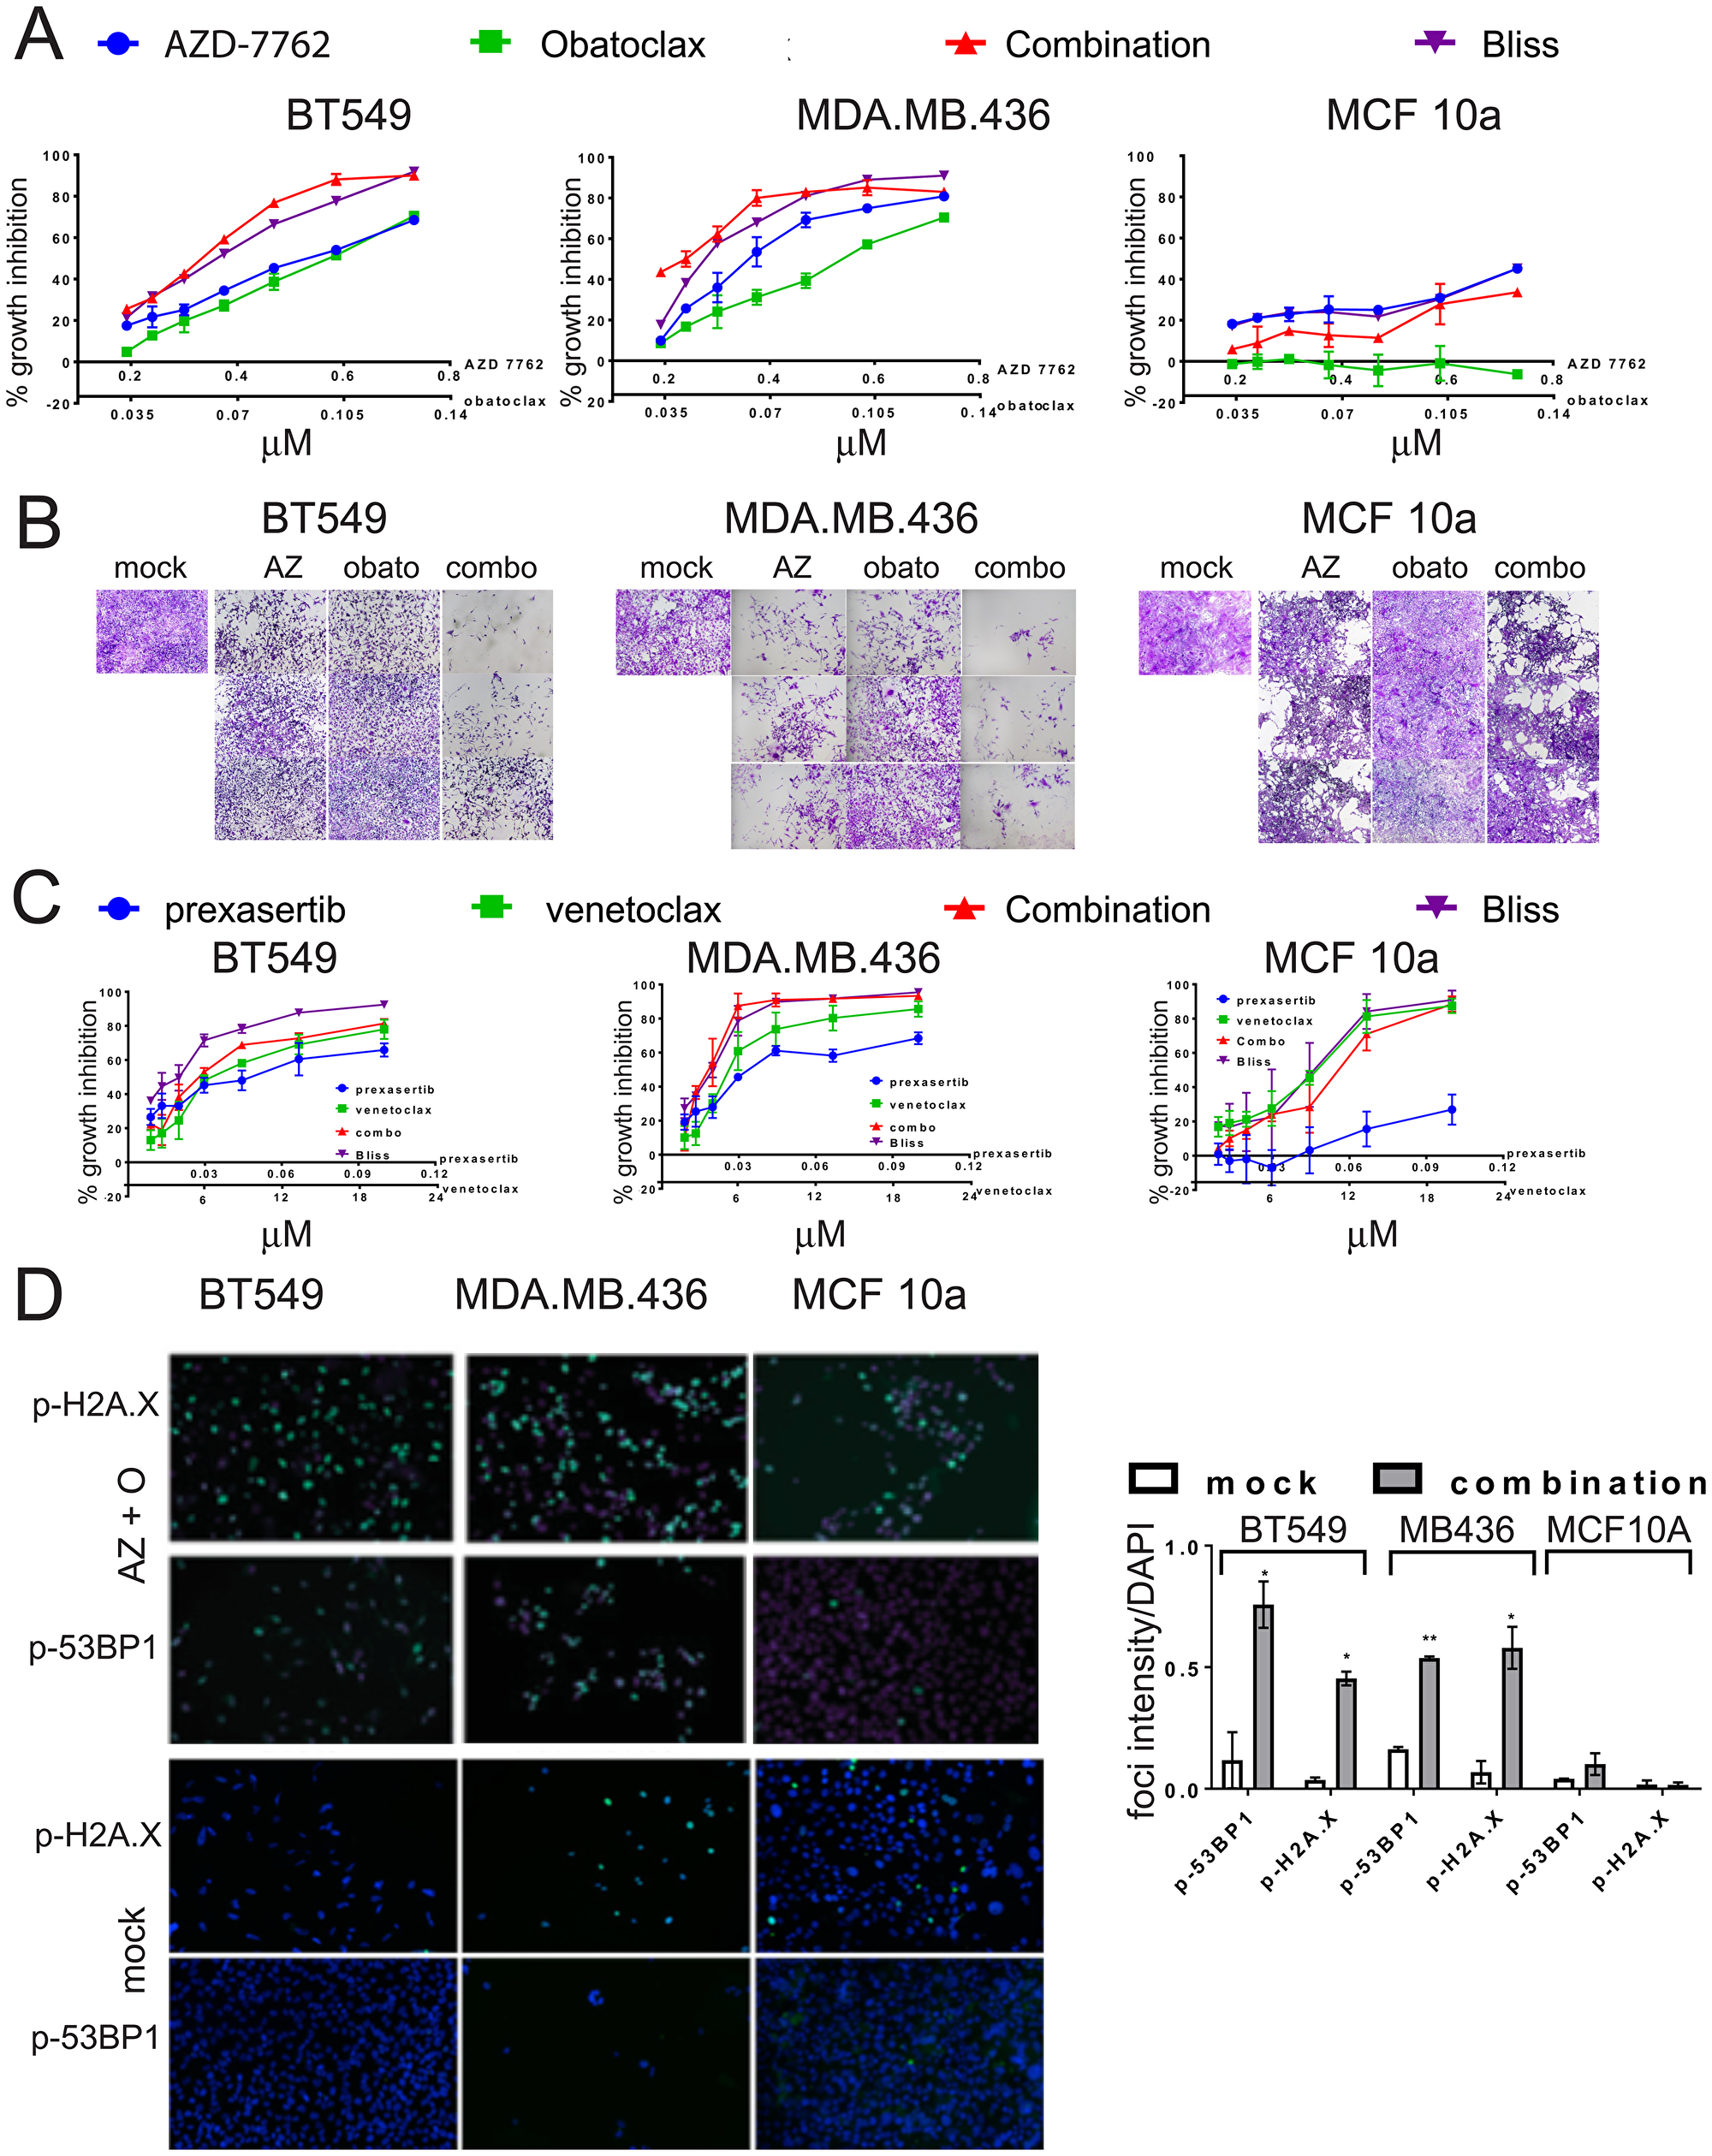 Growth inhibition of TNBC cell lines by combinations of CHK1 inhibitors and BCL-2 inhibitors.